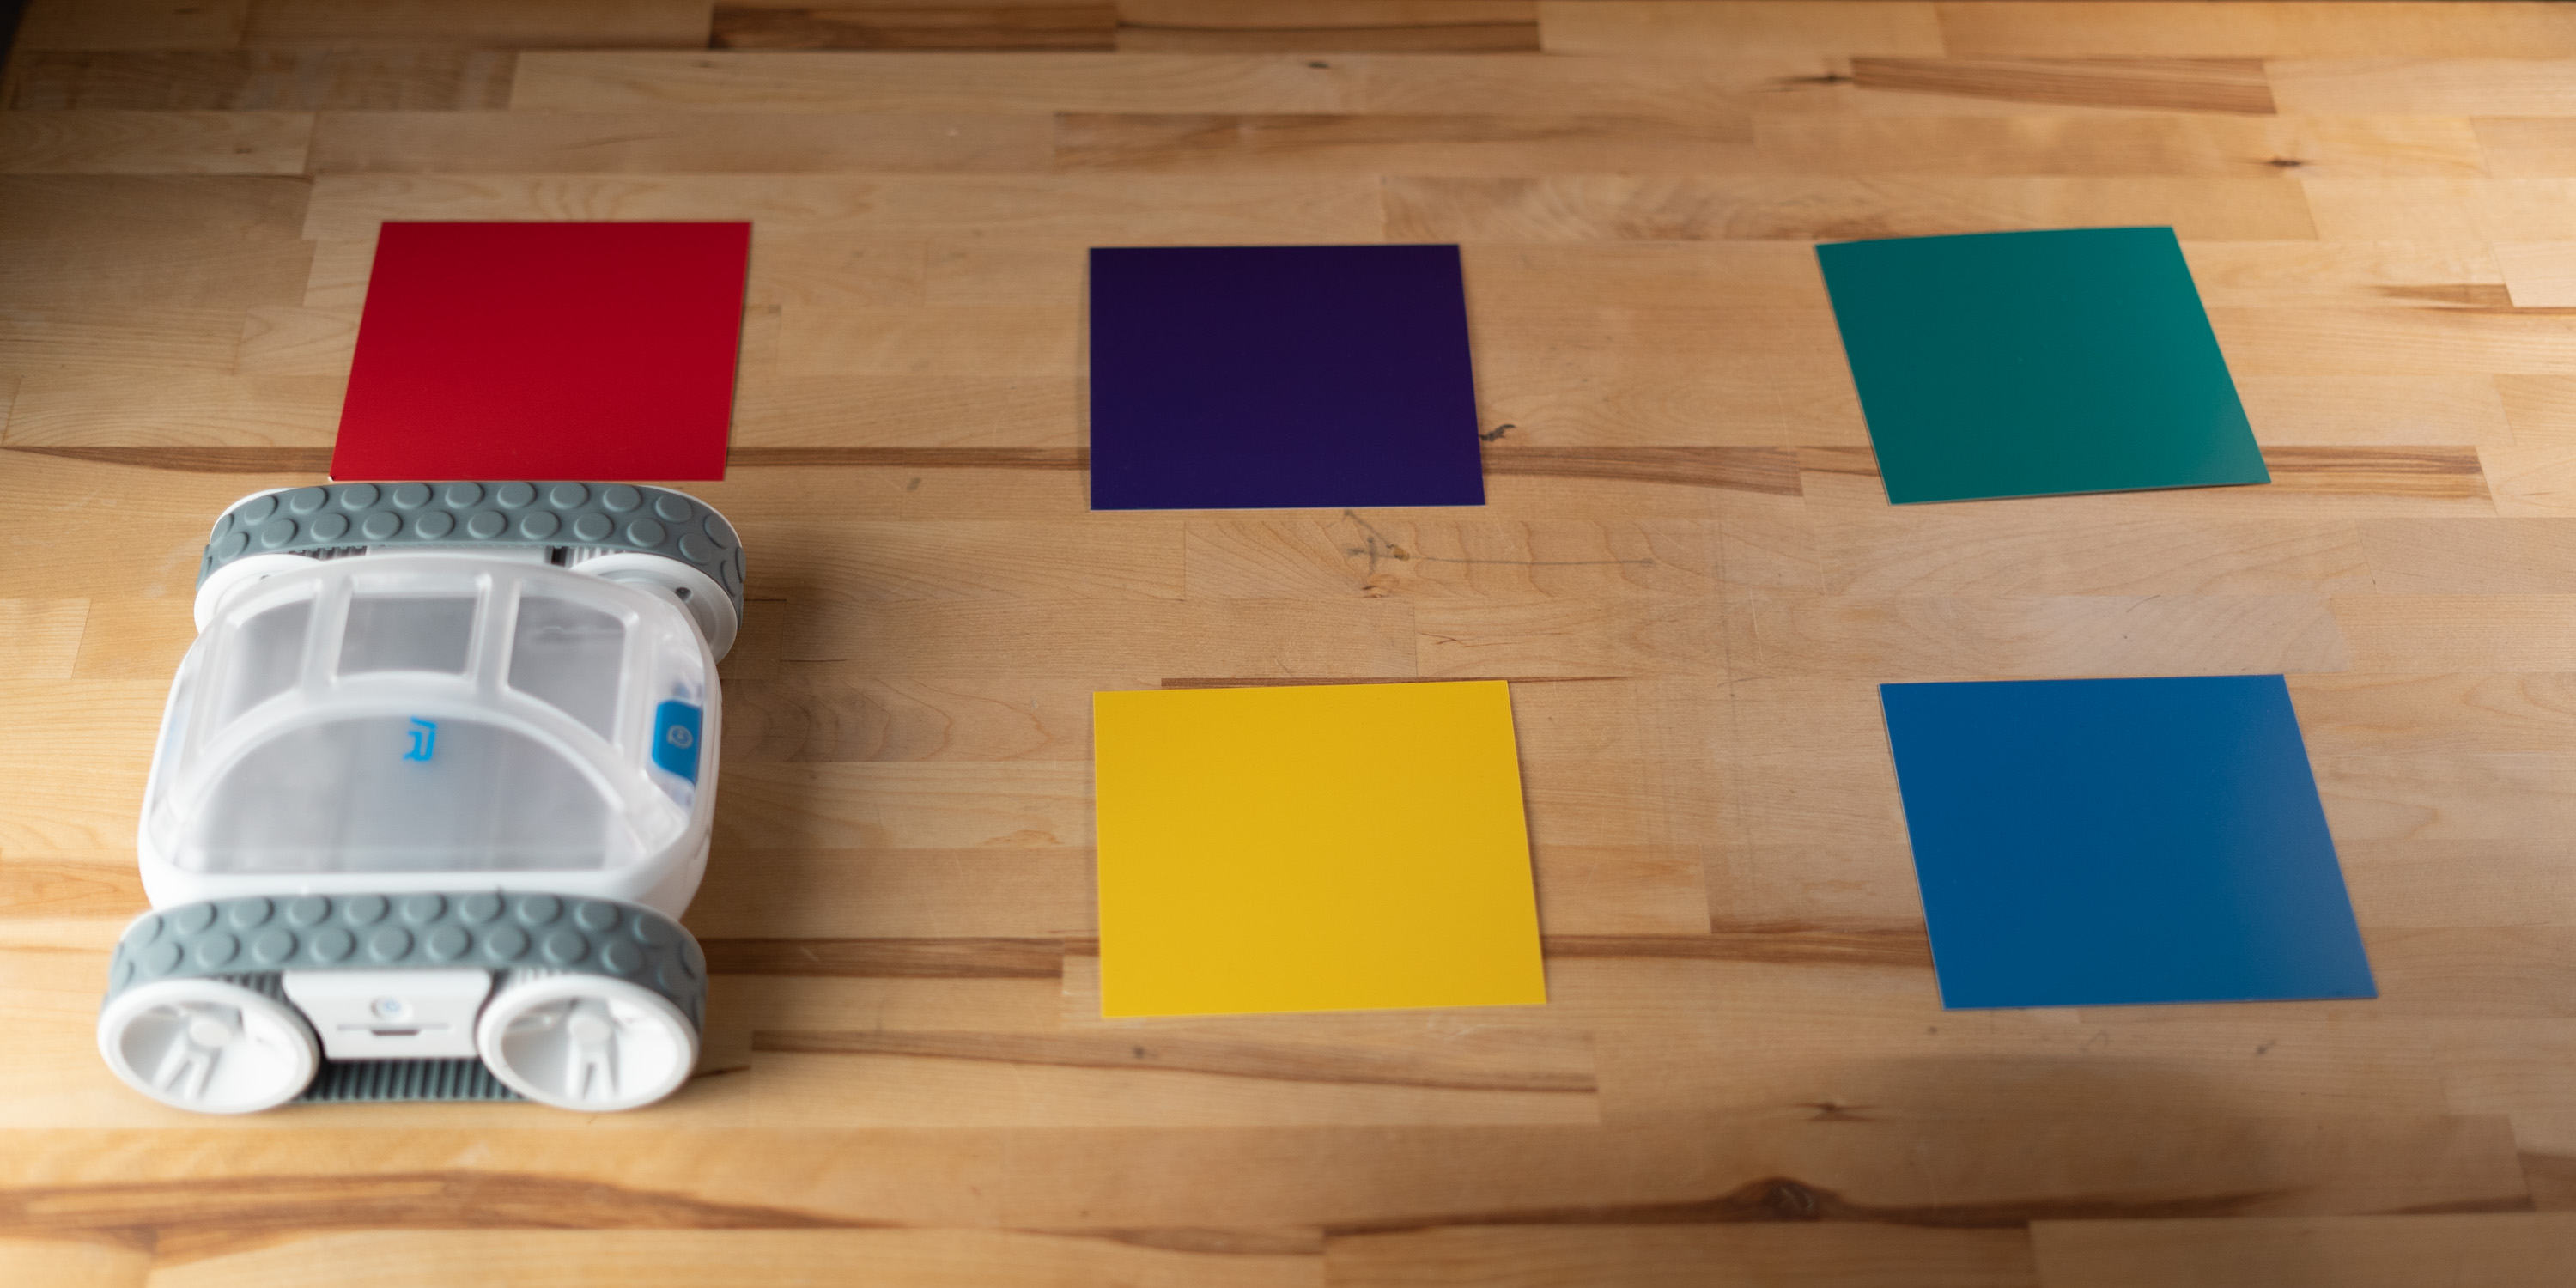 Sphero RVR lined up in front of color squares